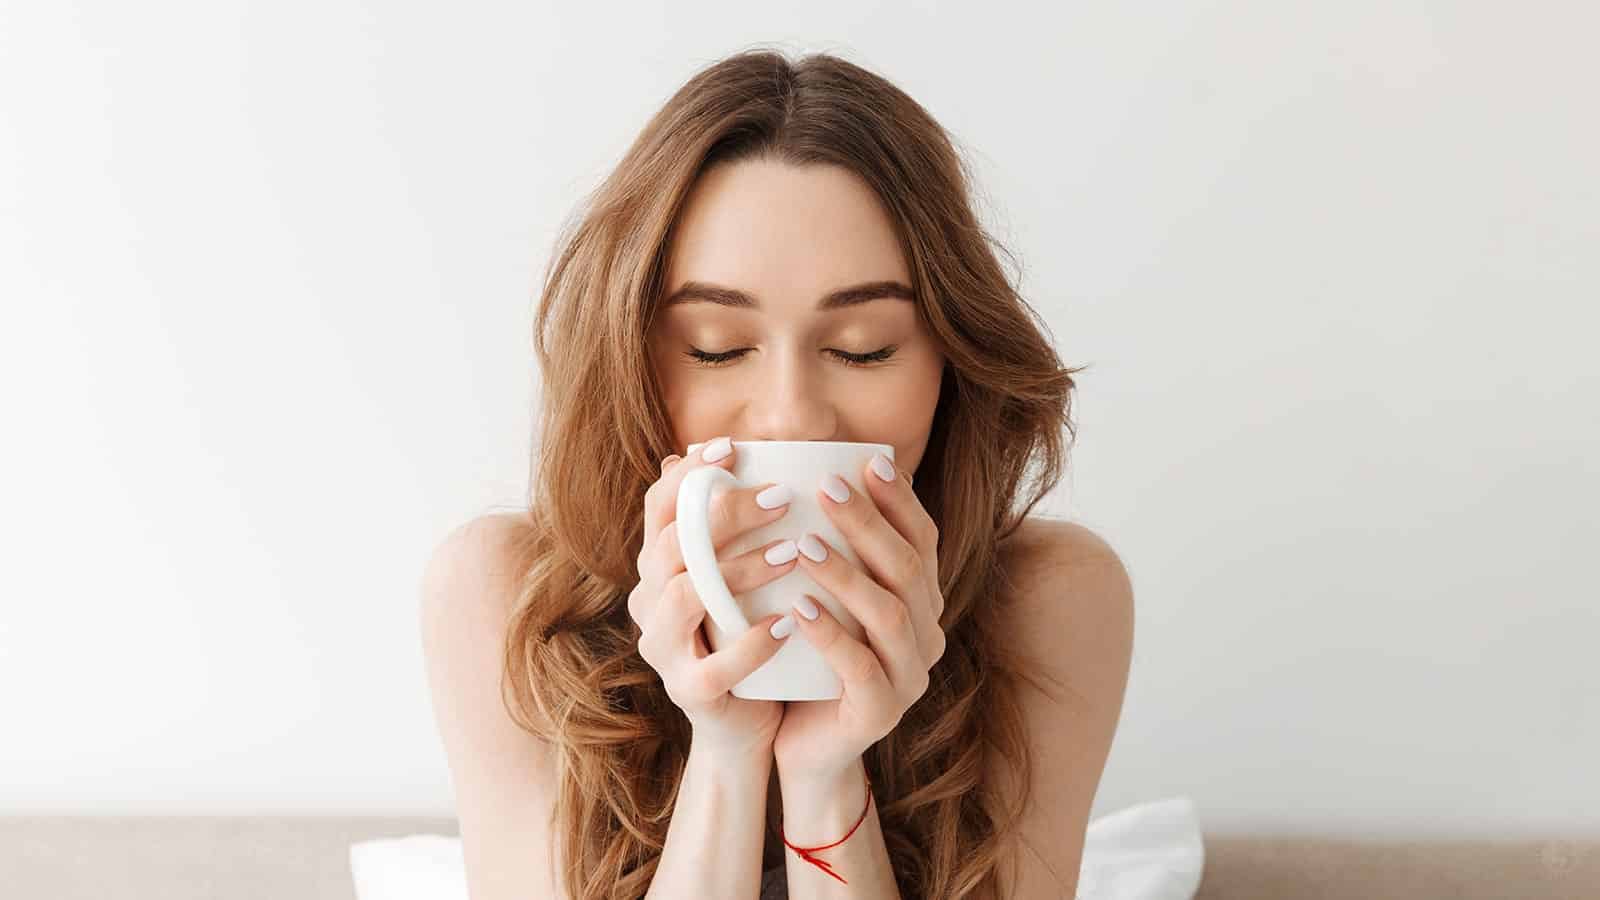 6 Morning Energy Drinks That Wake You Up Better Than Coffee